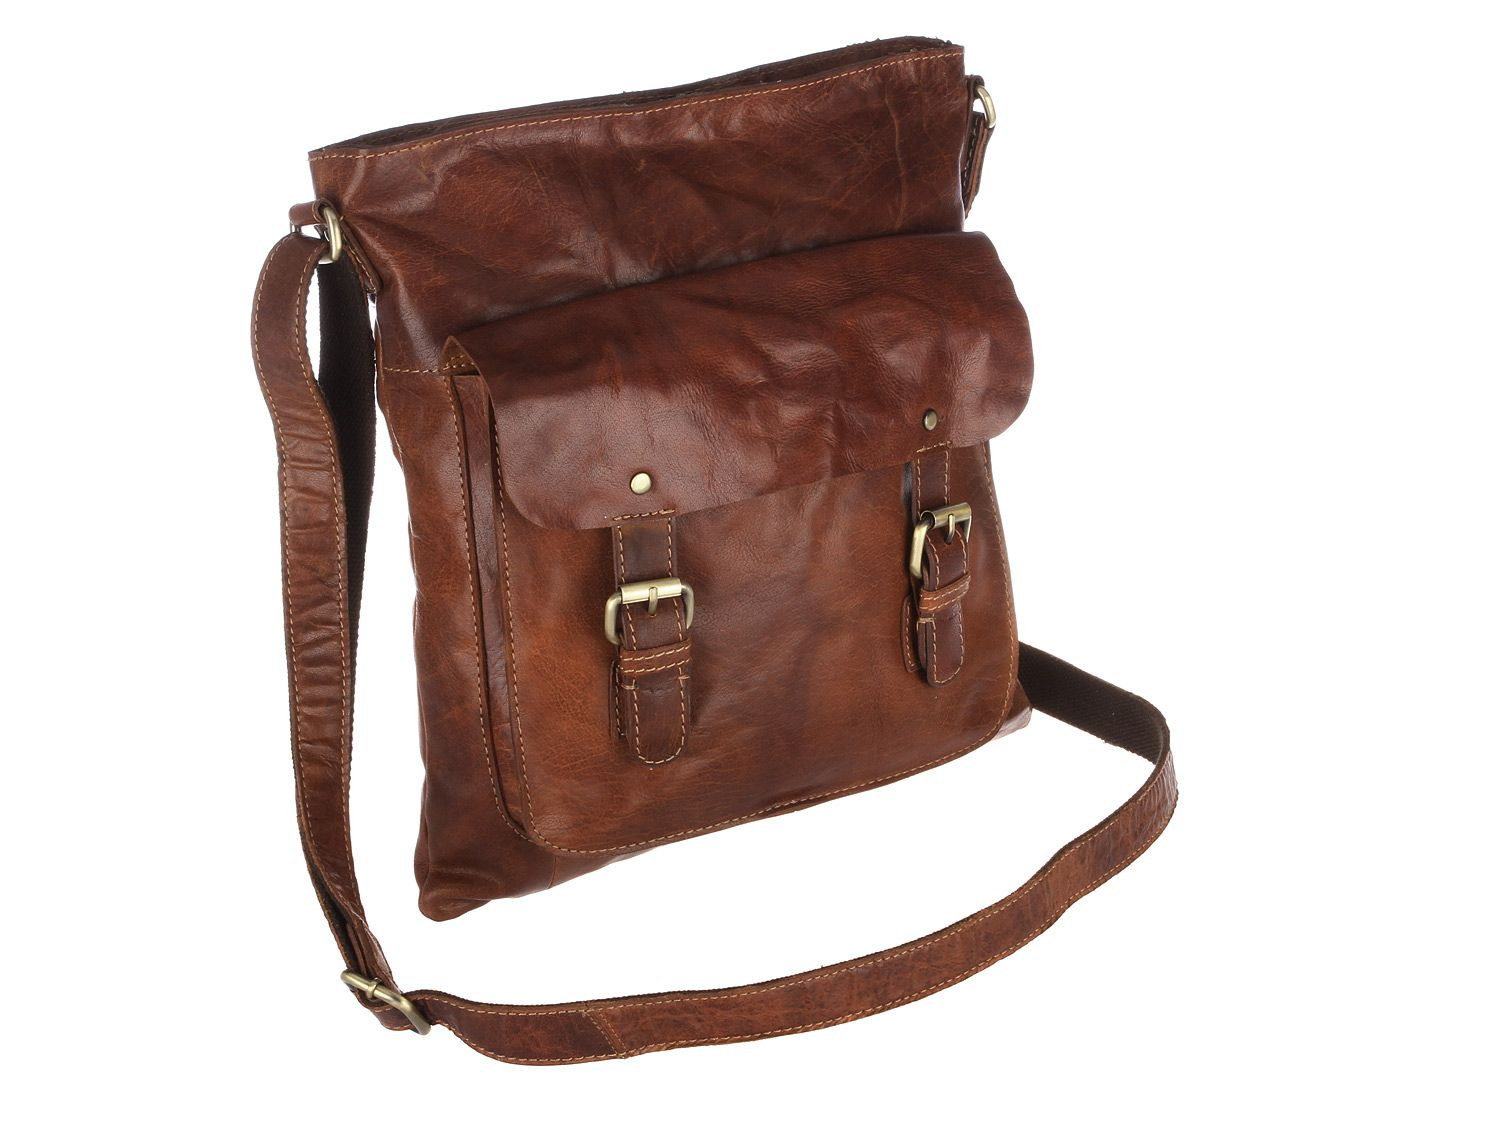 Rowallan Leather Flap Over Across The Body Bag Available At Youniqueuk Co Uk